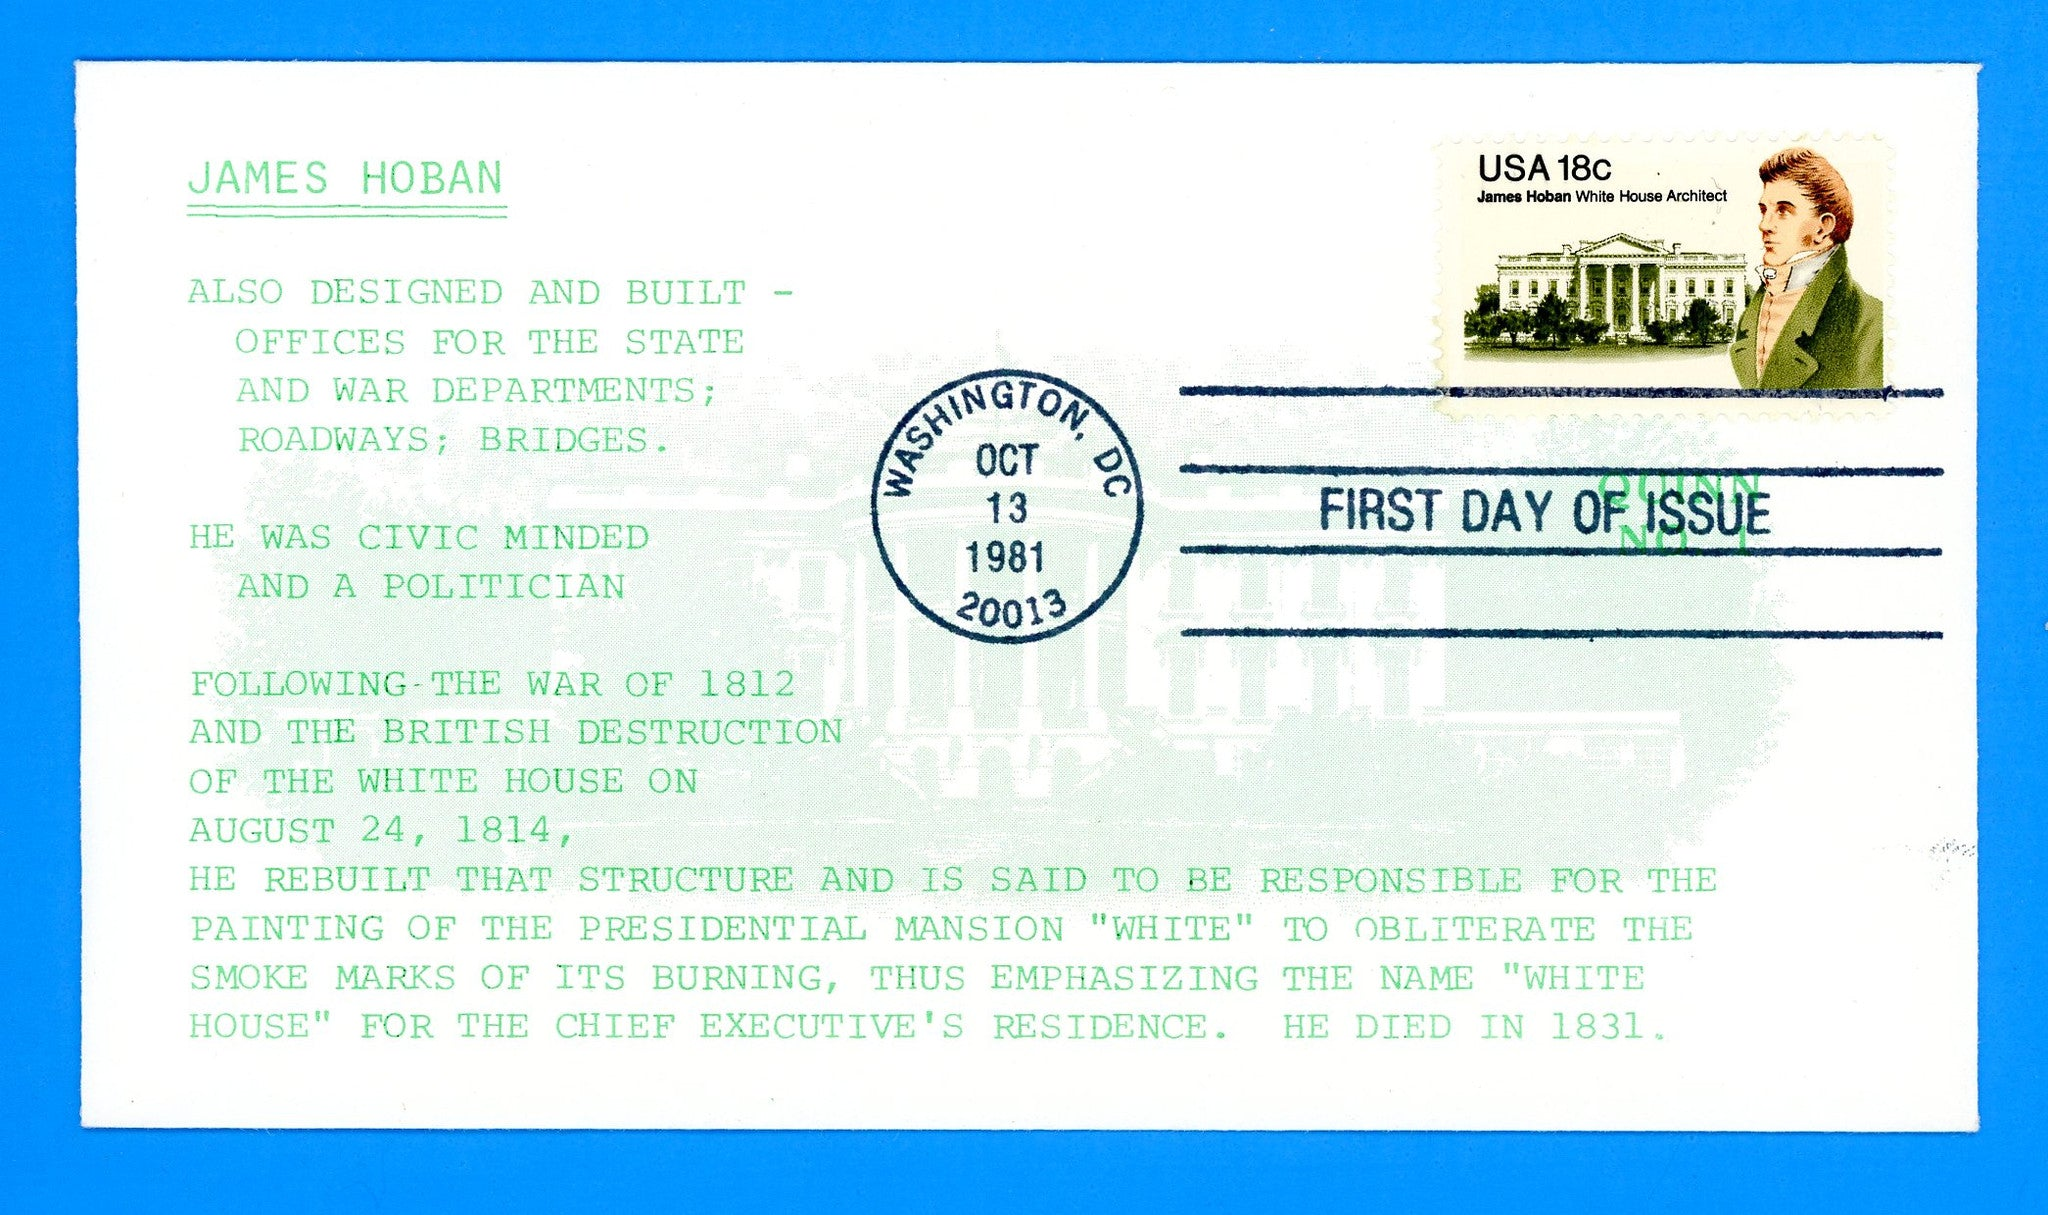 Scott 1935 James Hoban White House Architect First Day Cover